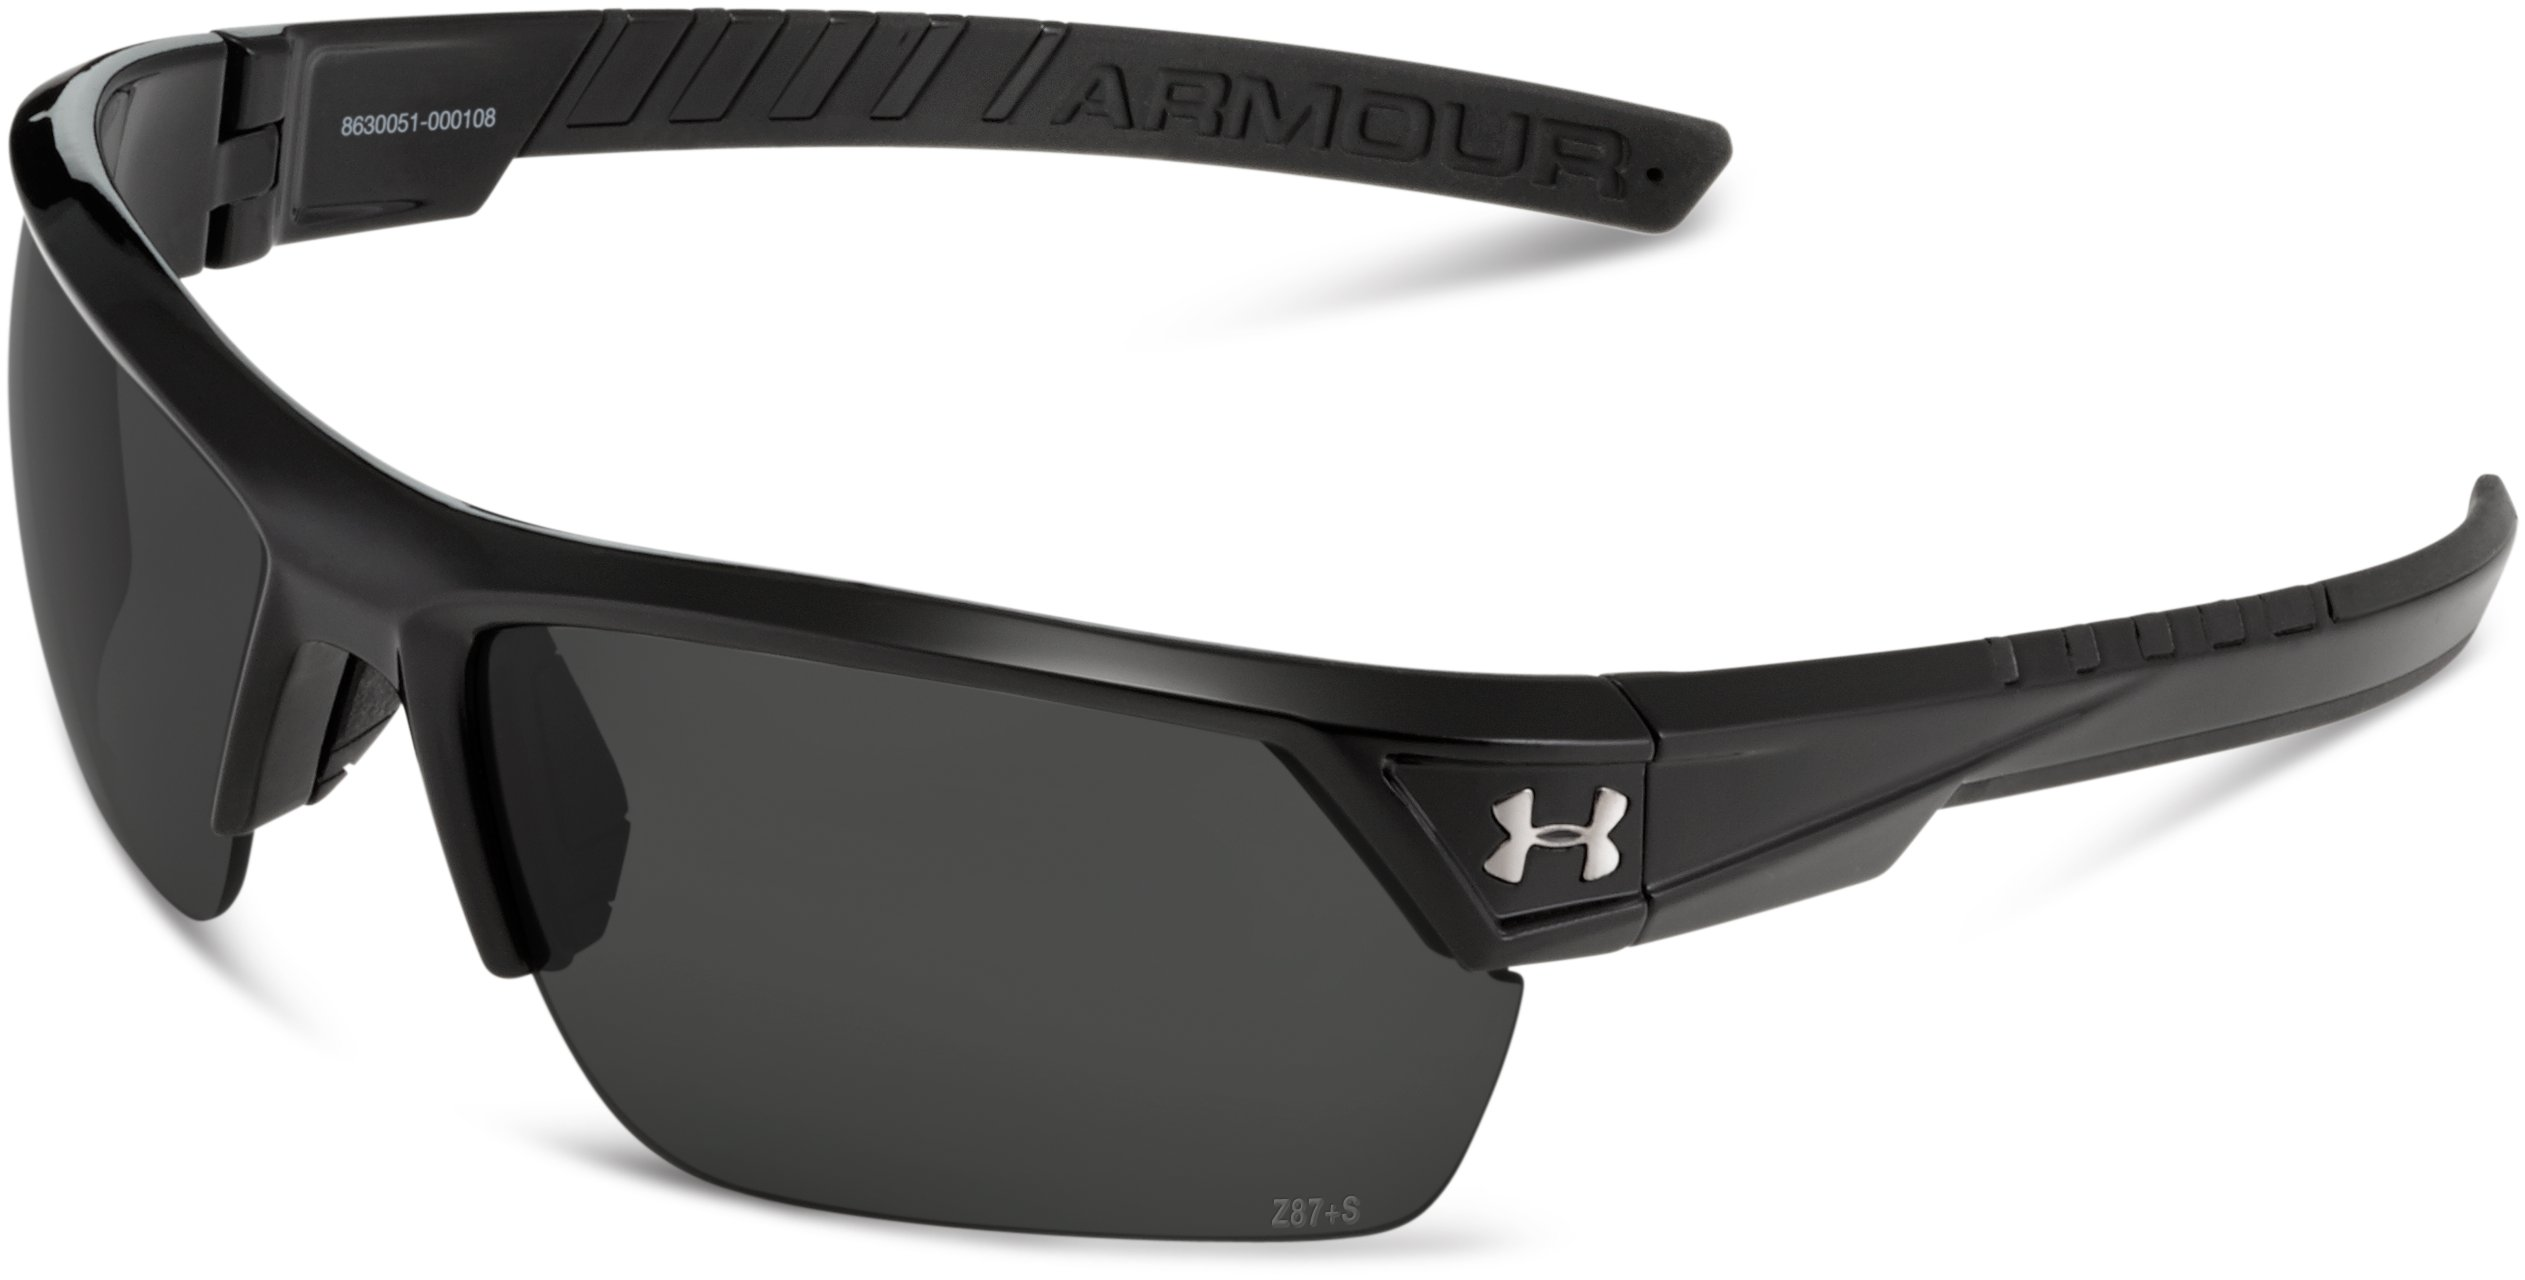 UA Igniter 2.0 Storm Polarized Sunglasses 1 Color $145.00